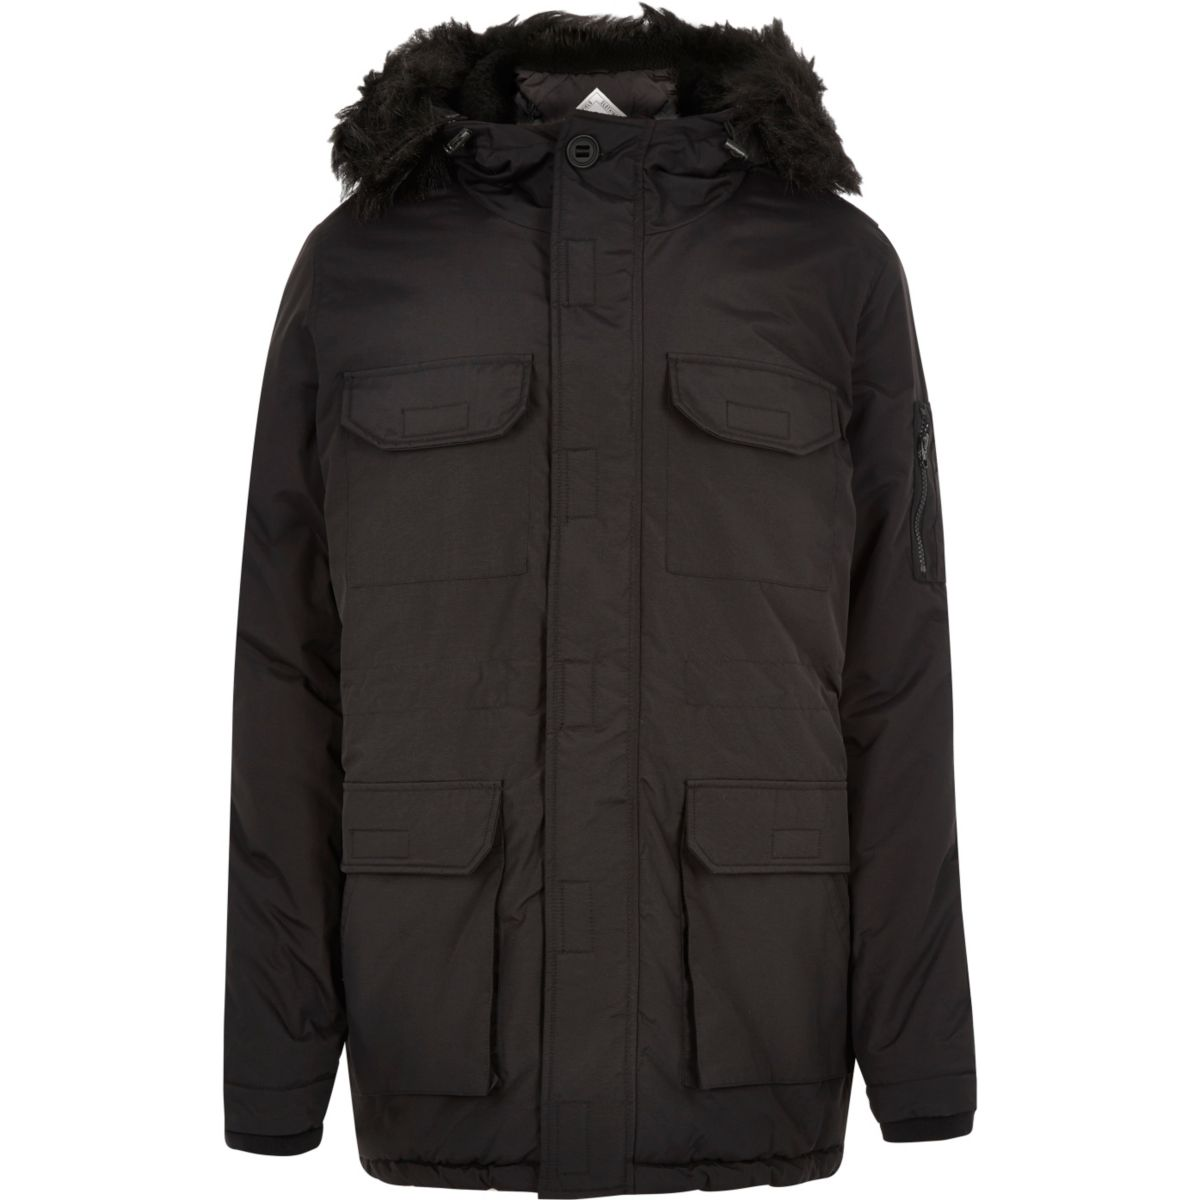 Black Bellfield faux fur parka winter coat